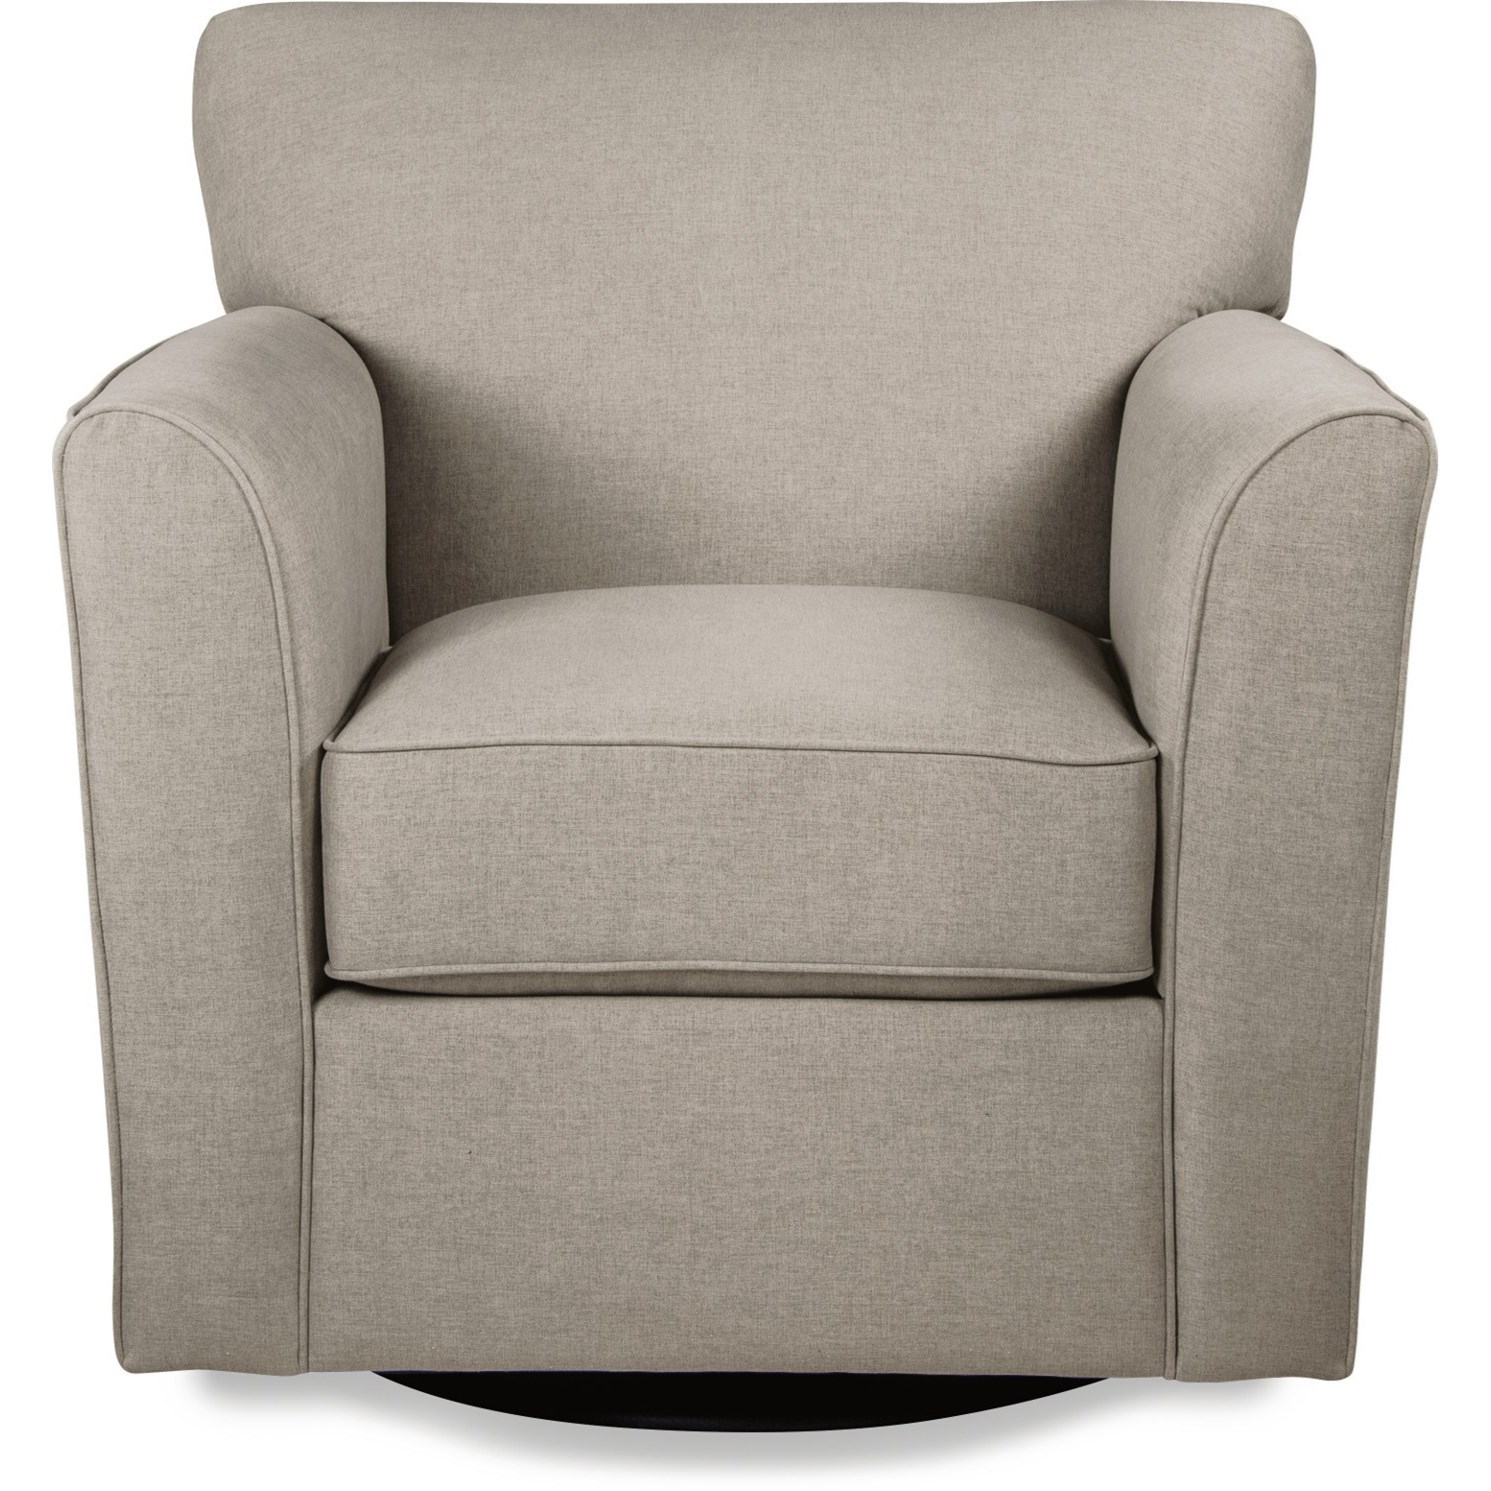 La-Z-Boy ChairsAllegra Premier Swivel Occasional Chair ...  sc 1 st  Morris Furniture & La-Z-Boy Chairs Allegra Swivel Chair with Flared Arms | Morris Home ...